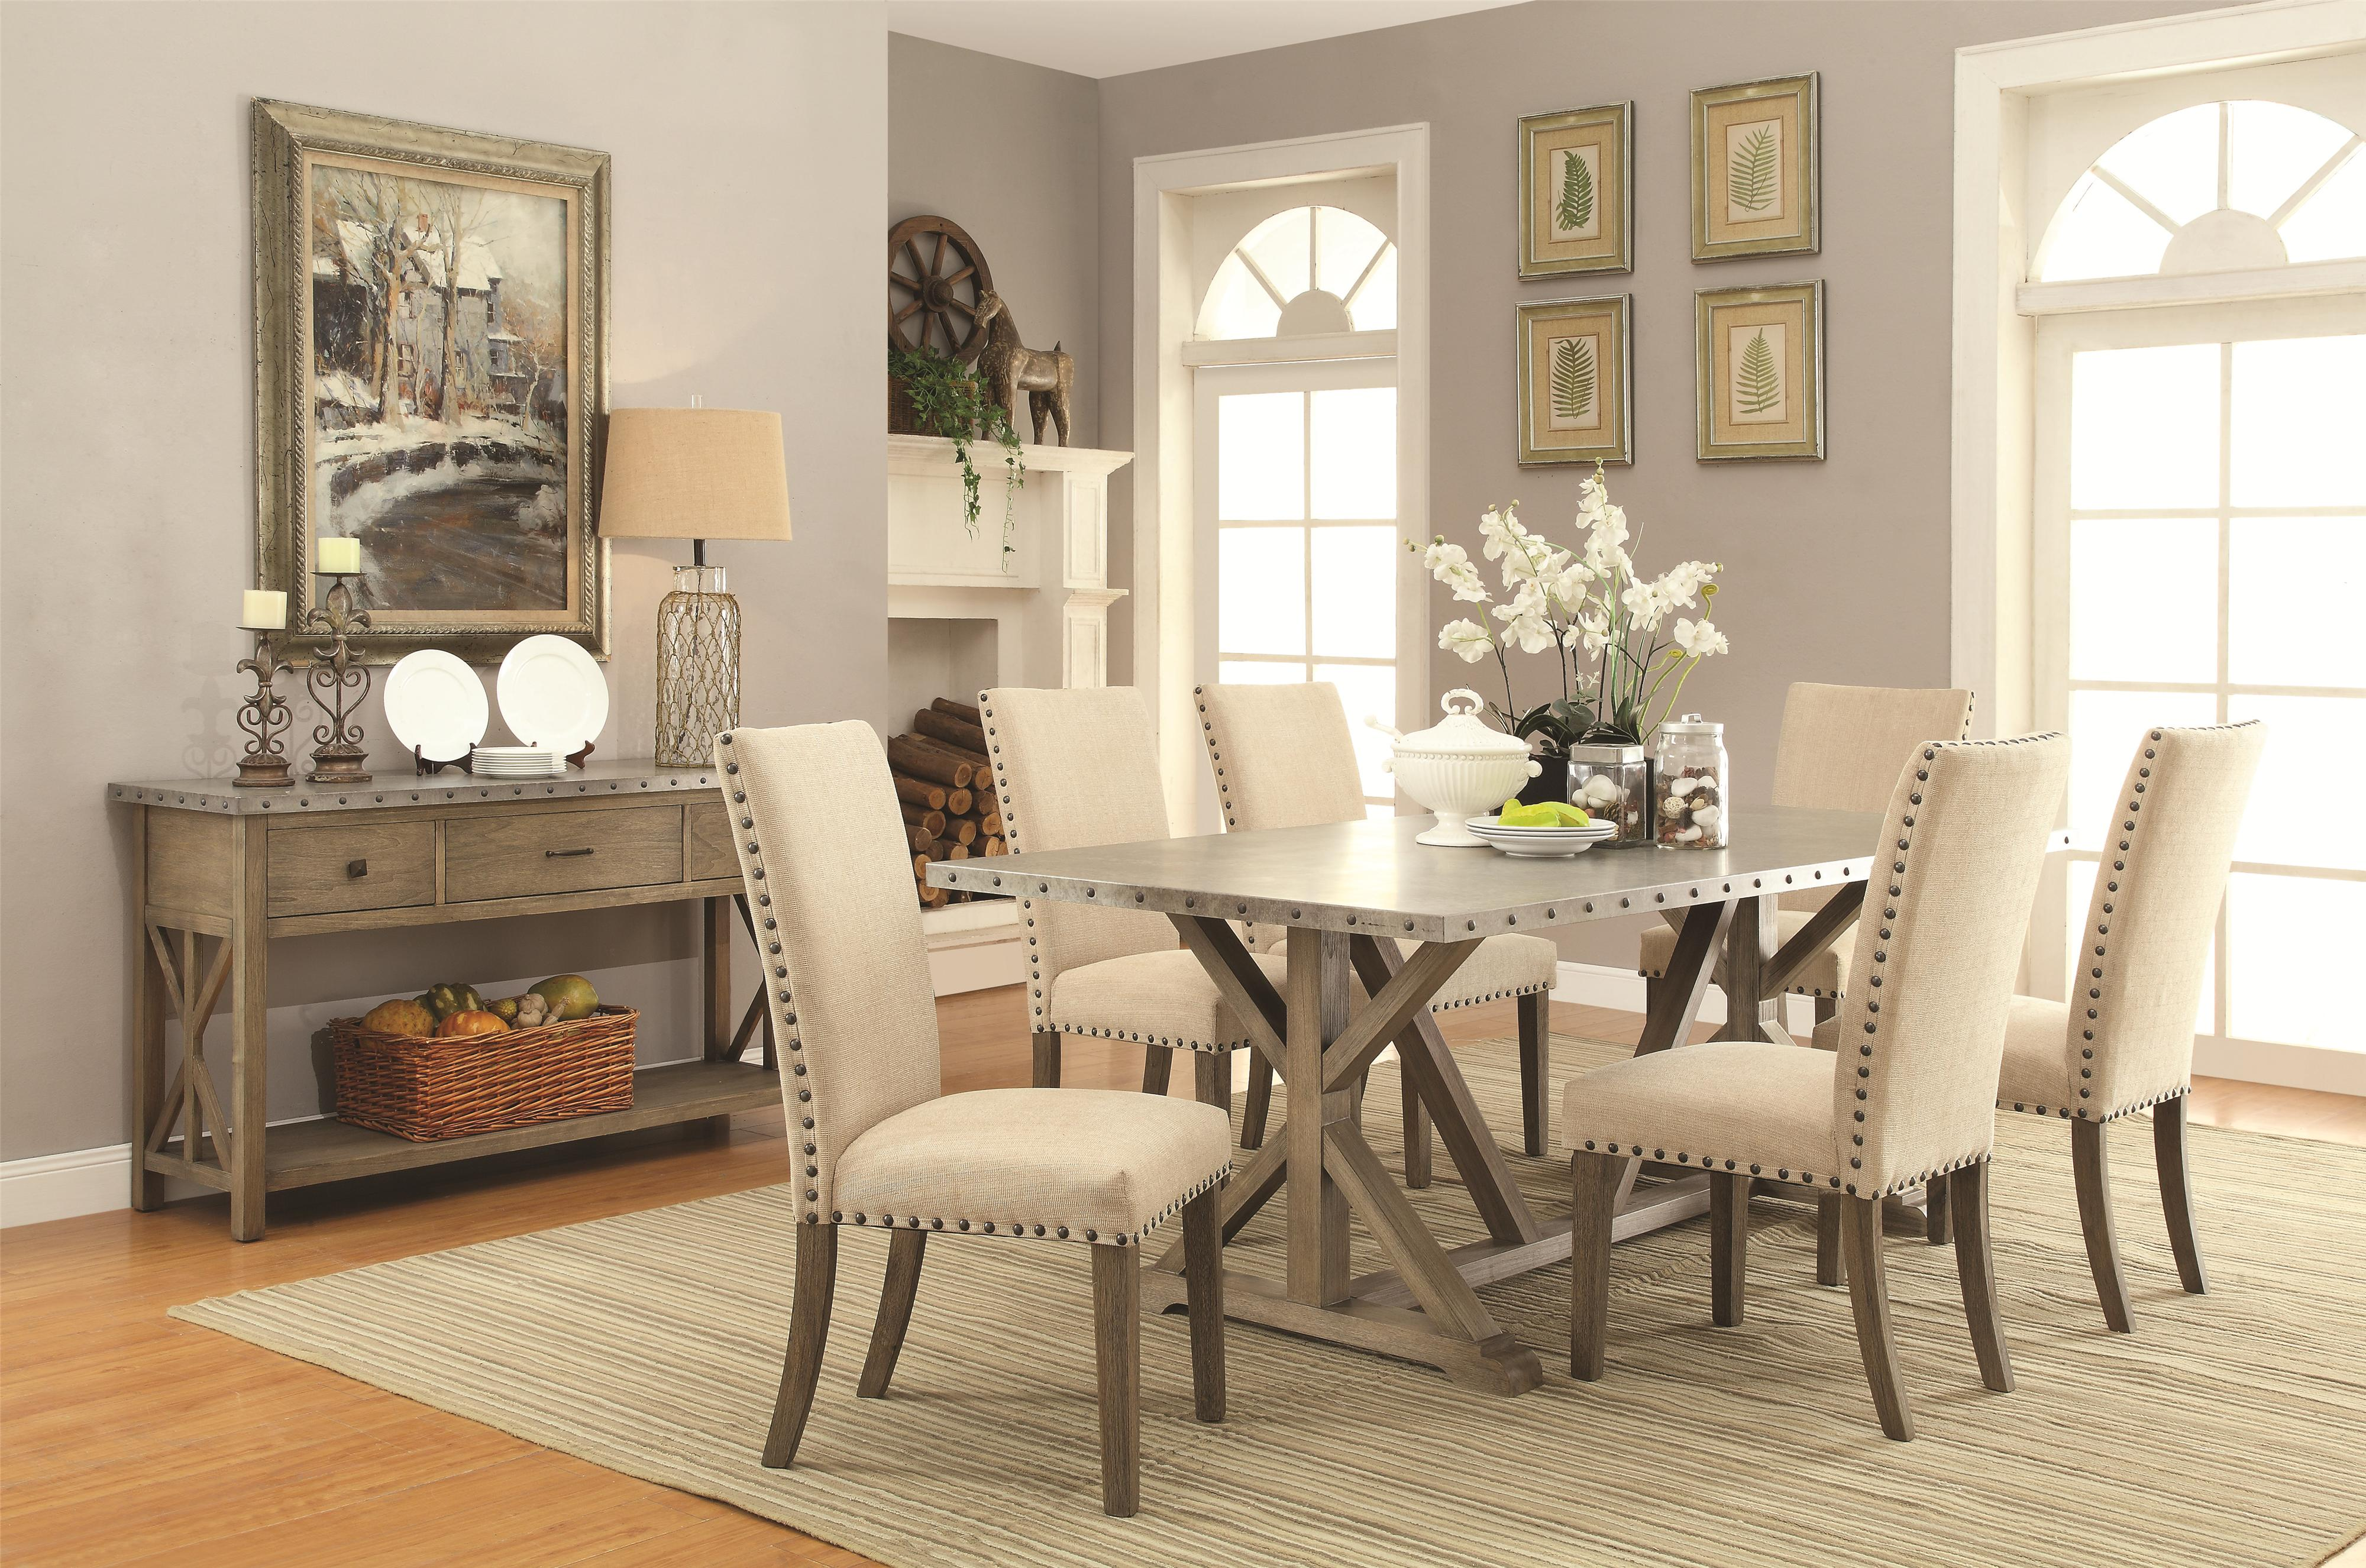 Transitional Style Living Room Furniture Coaster Webber 7 Piece Transitional Style Table And Chair Set With